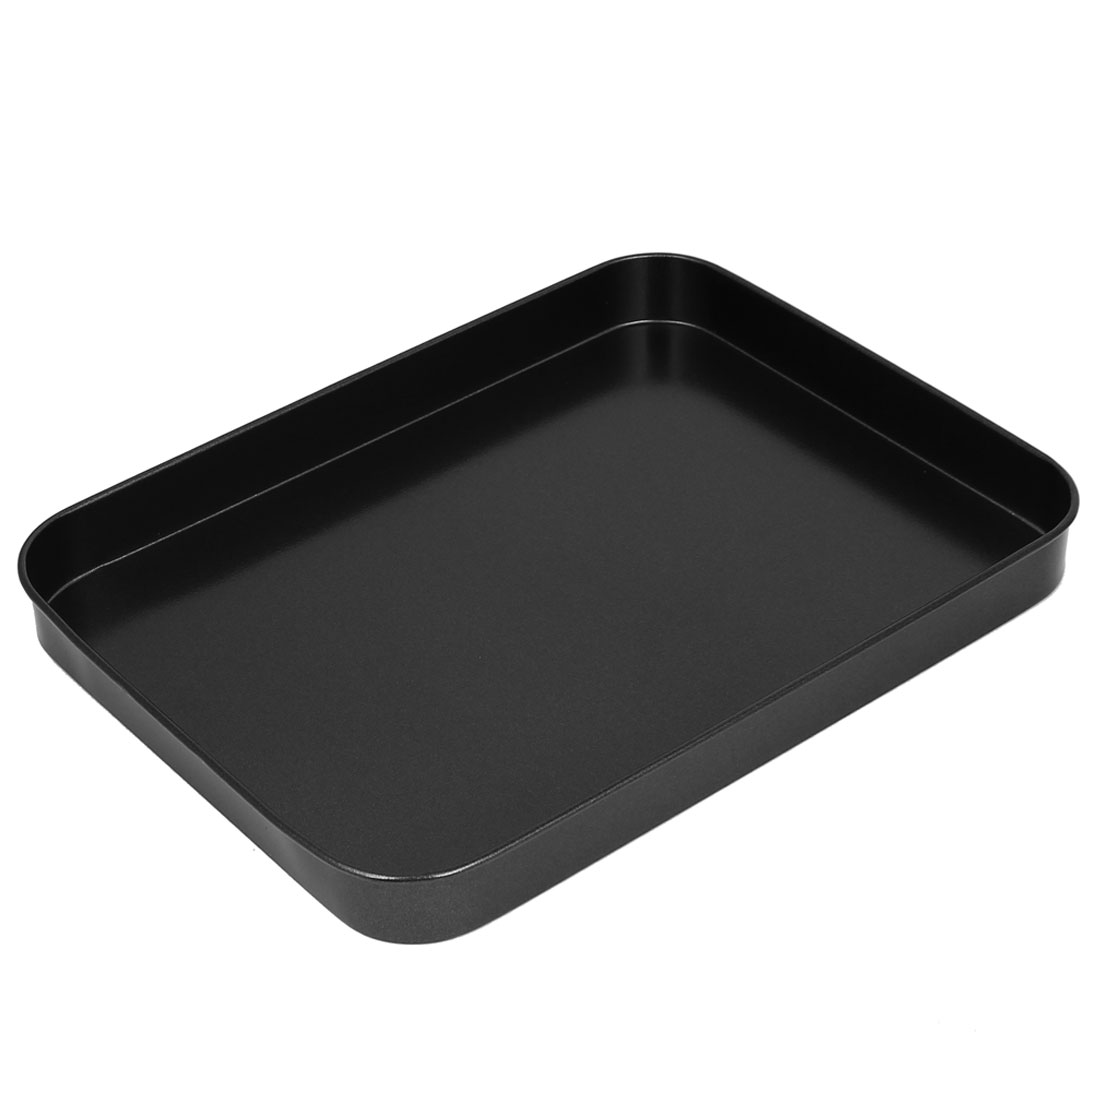 Bread Carbon Steel Rectangle Shaped Baking Mold Mould Bakeware Pan Black